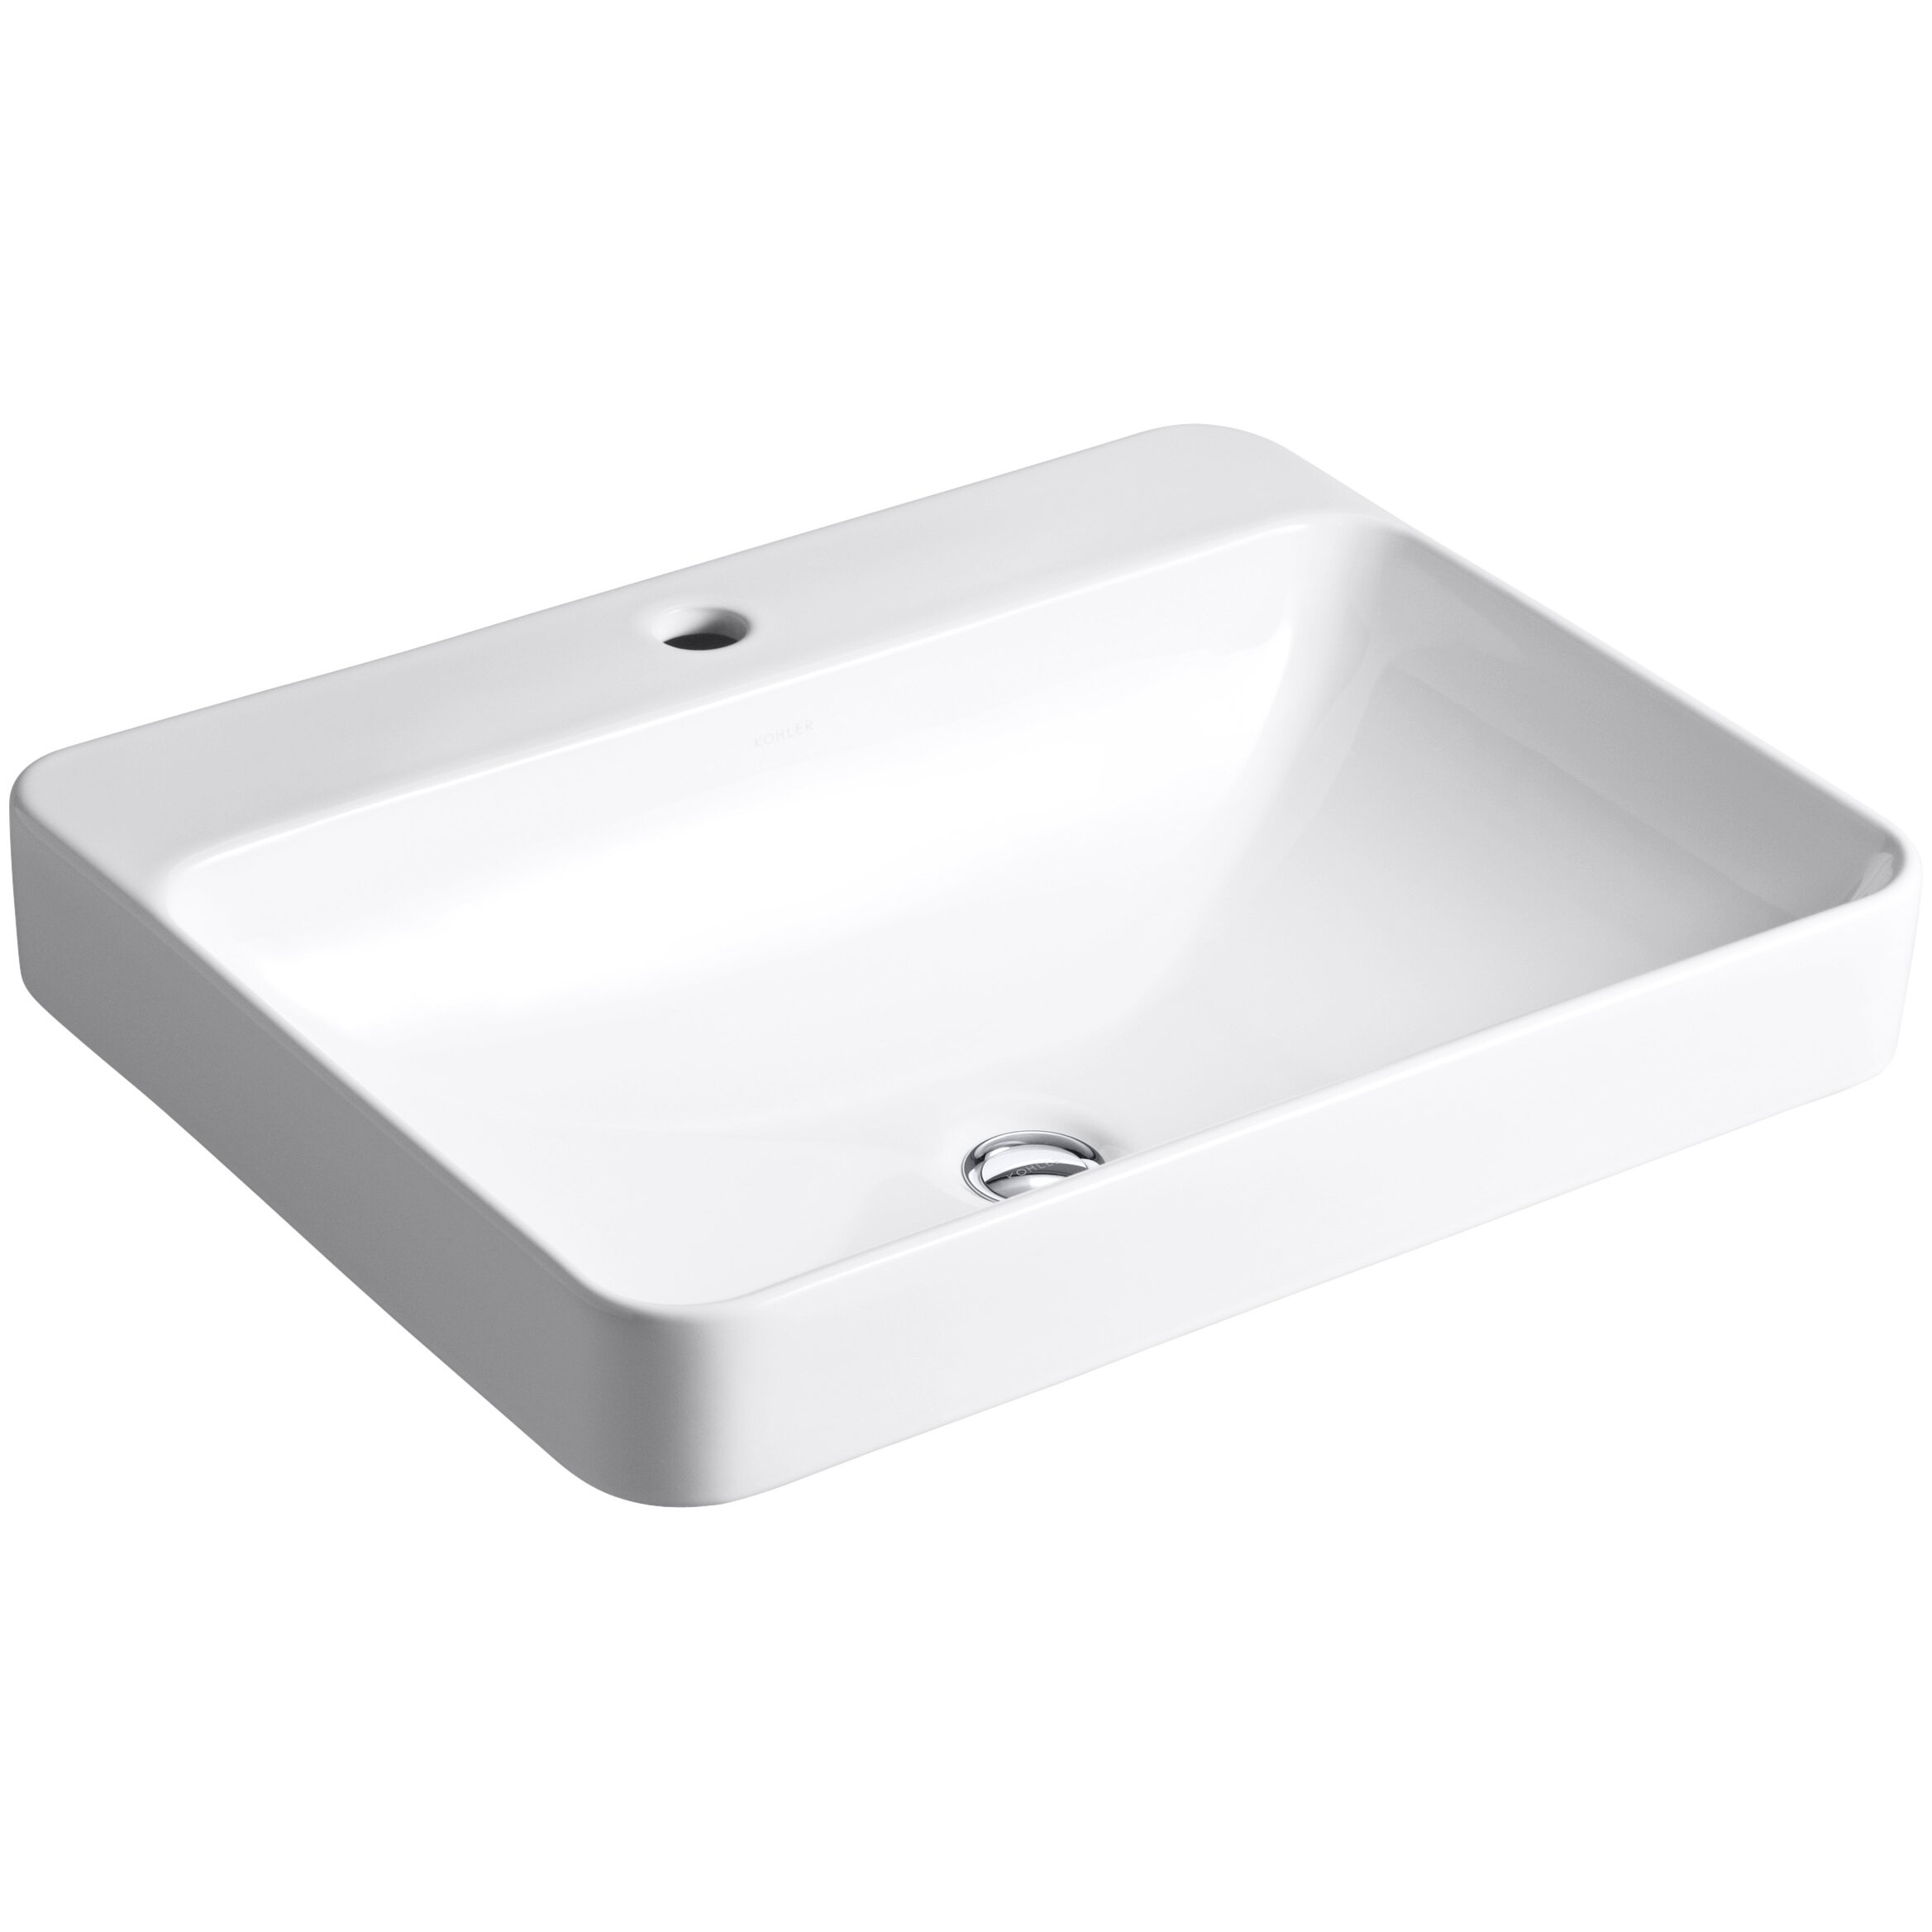 Kohler Vox Sink : ... Counter Bathroom Sink W Above Counter Bathroom Sink. Mefunnysideup.co